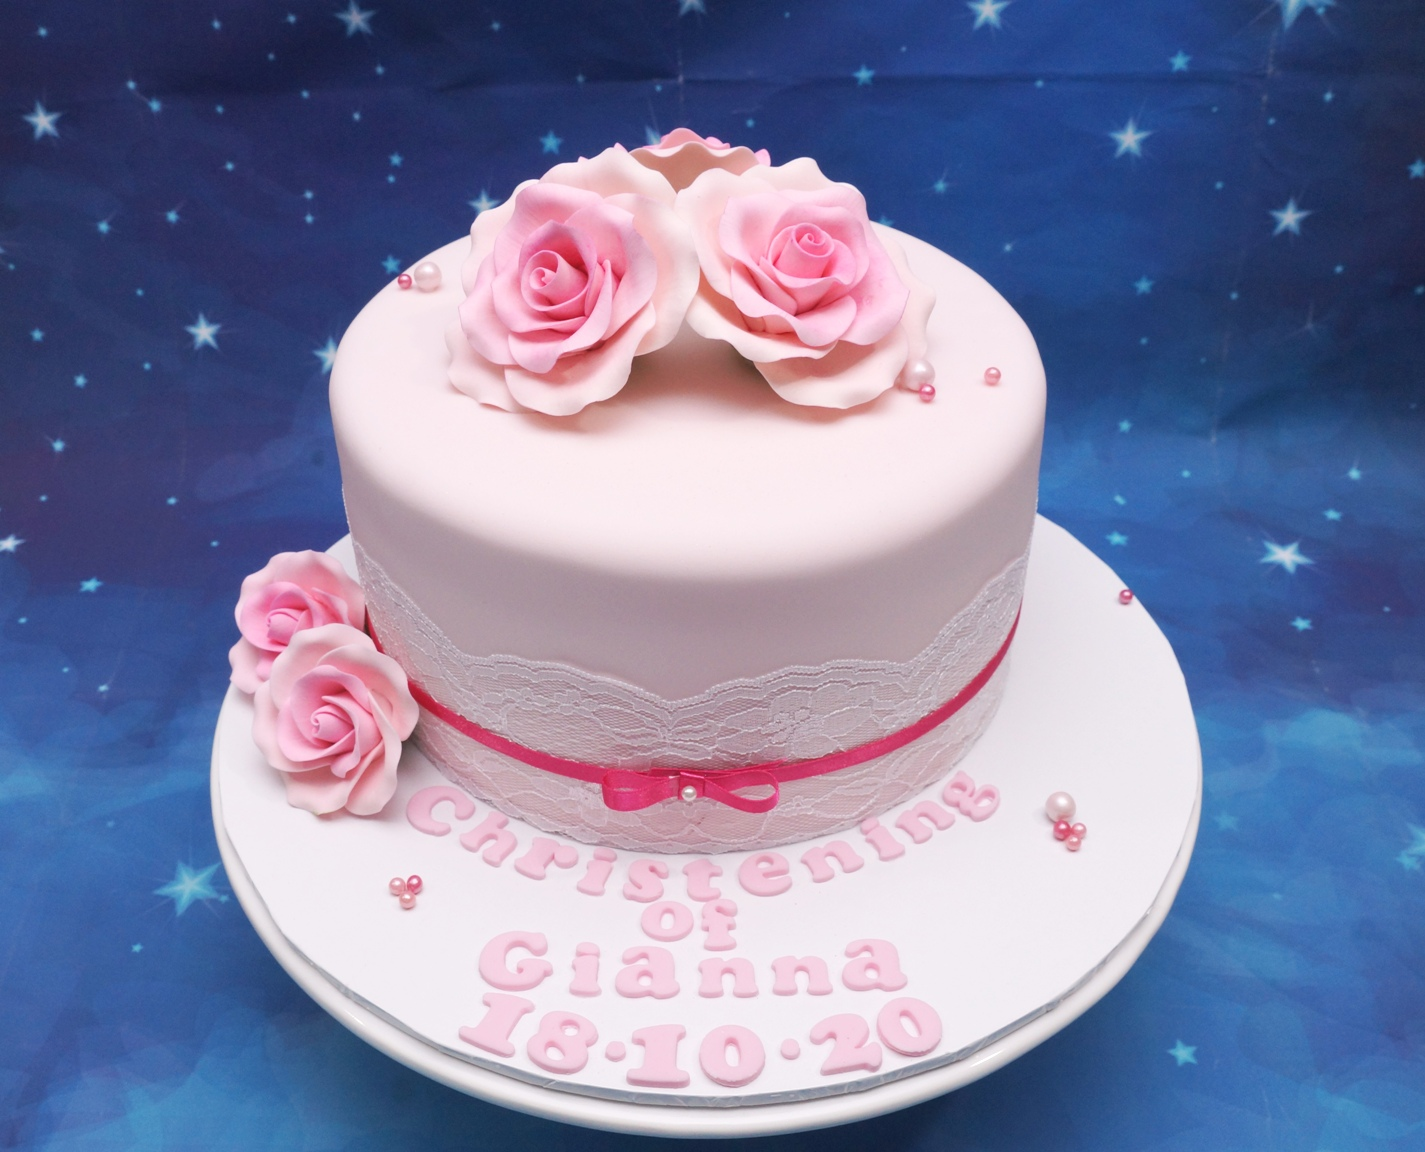 Pink Fondant with Pink Sugar Roses Chris